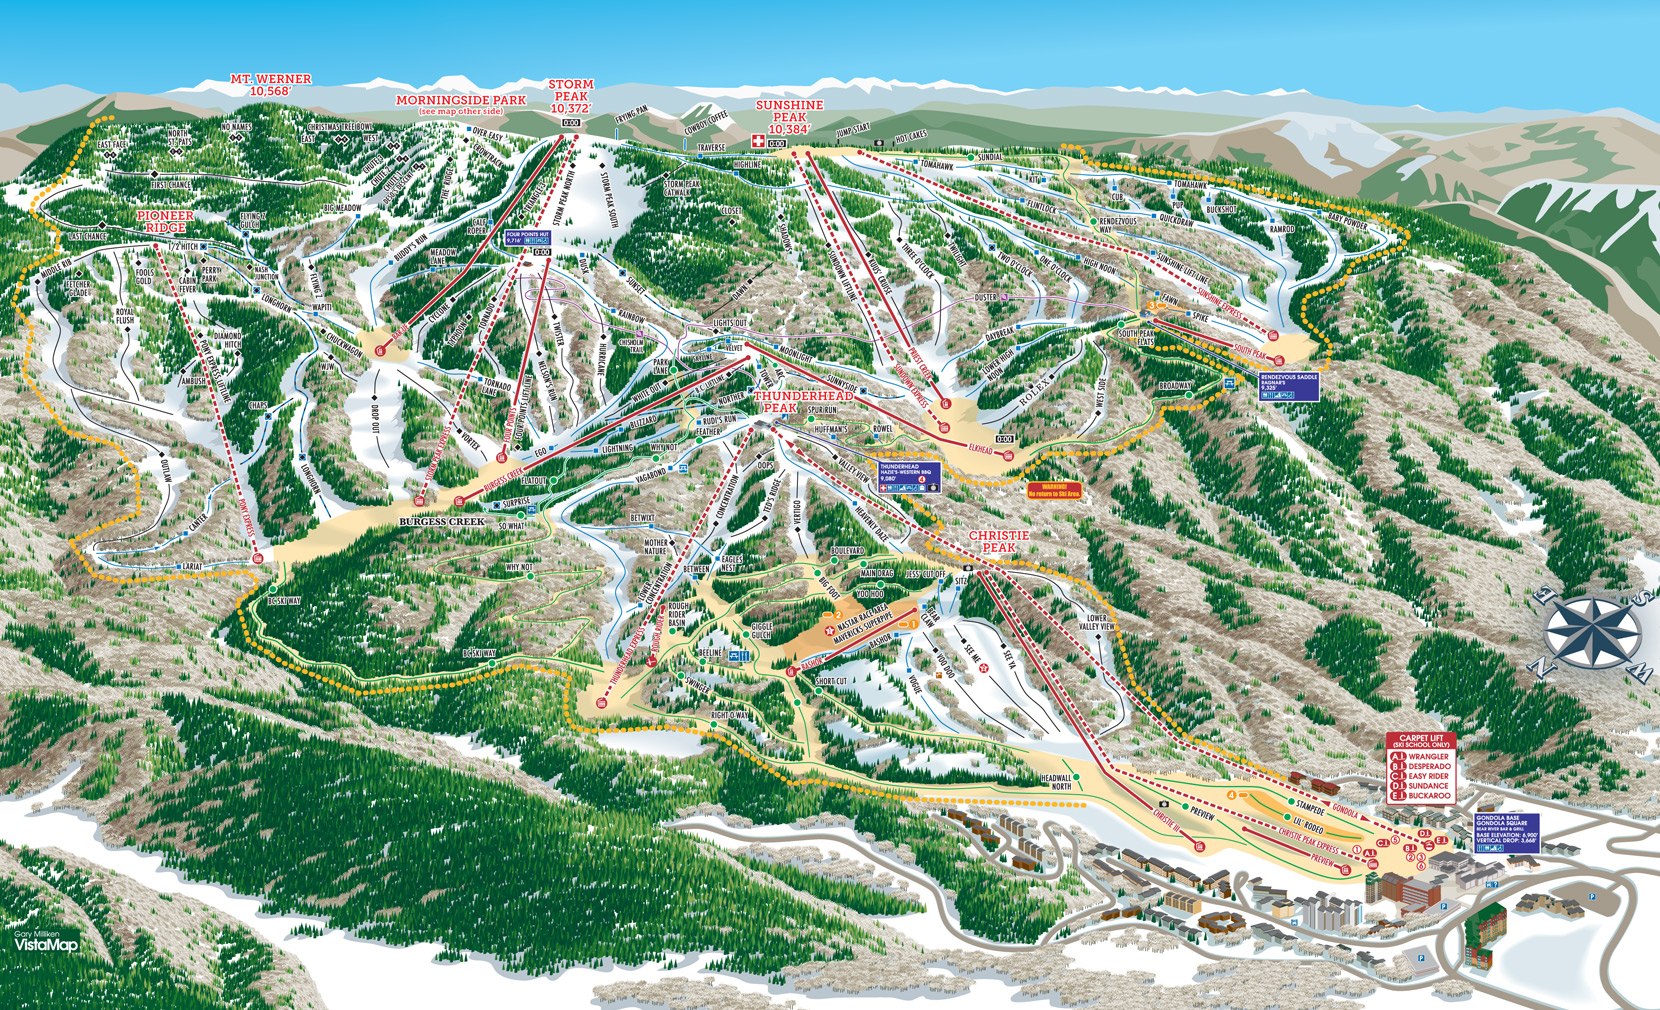 steamboat ski resort - skimap